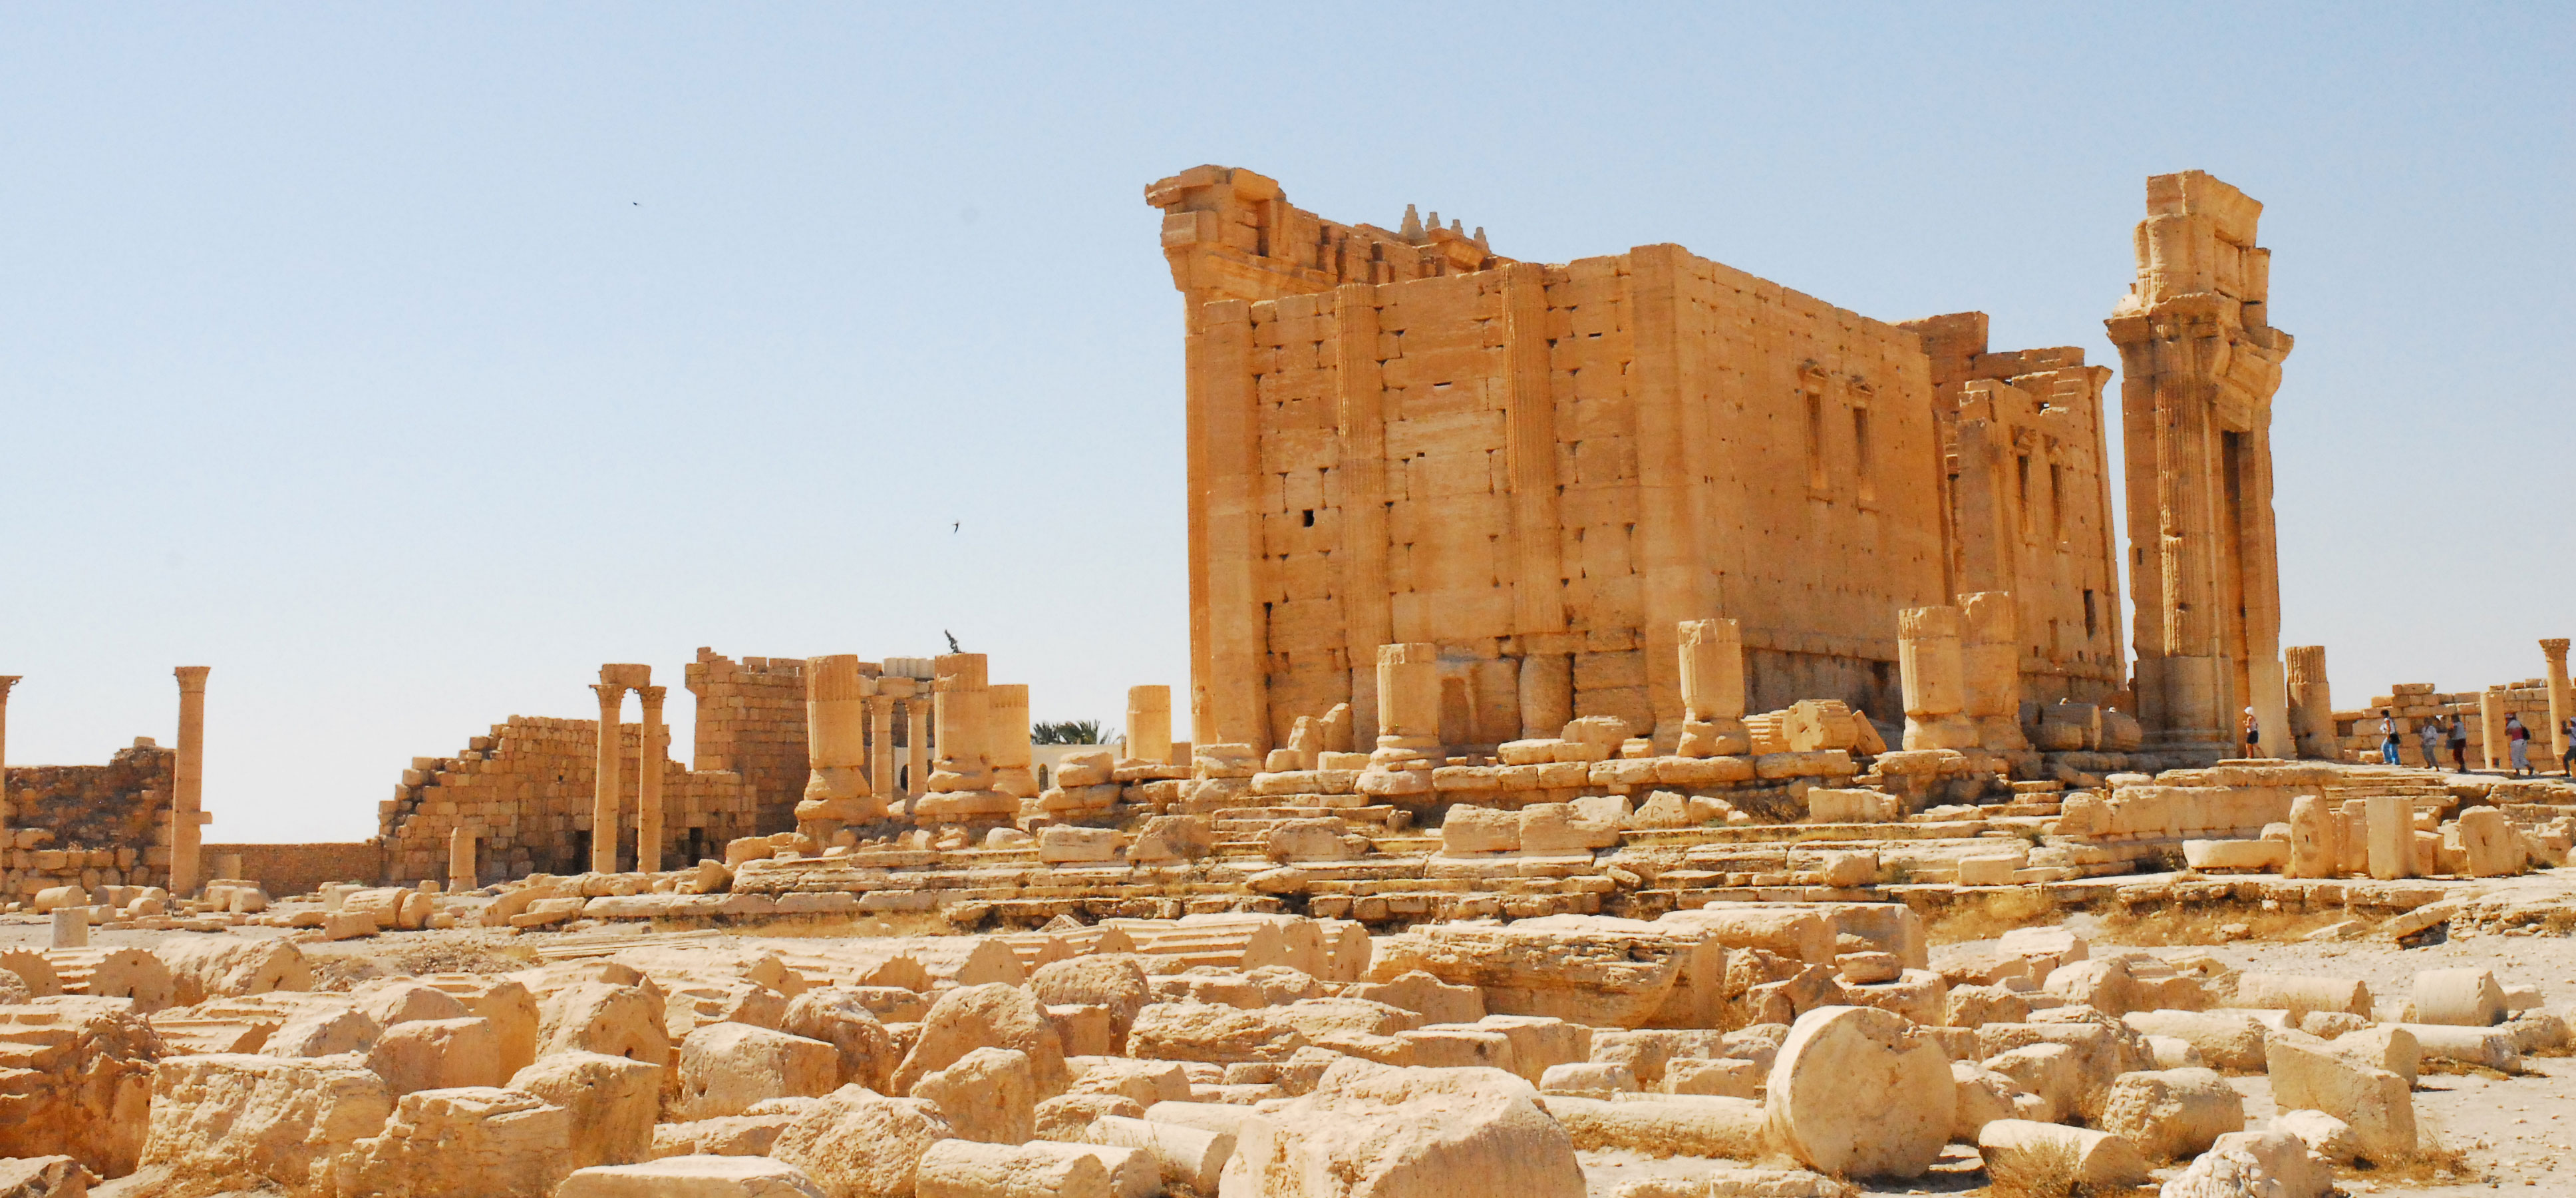 Islamic State (IS) Militants Destroyed The Tombs Of Ancient Palmyra's Temple Of Bel